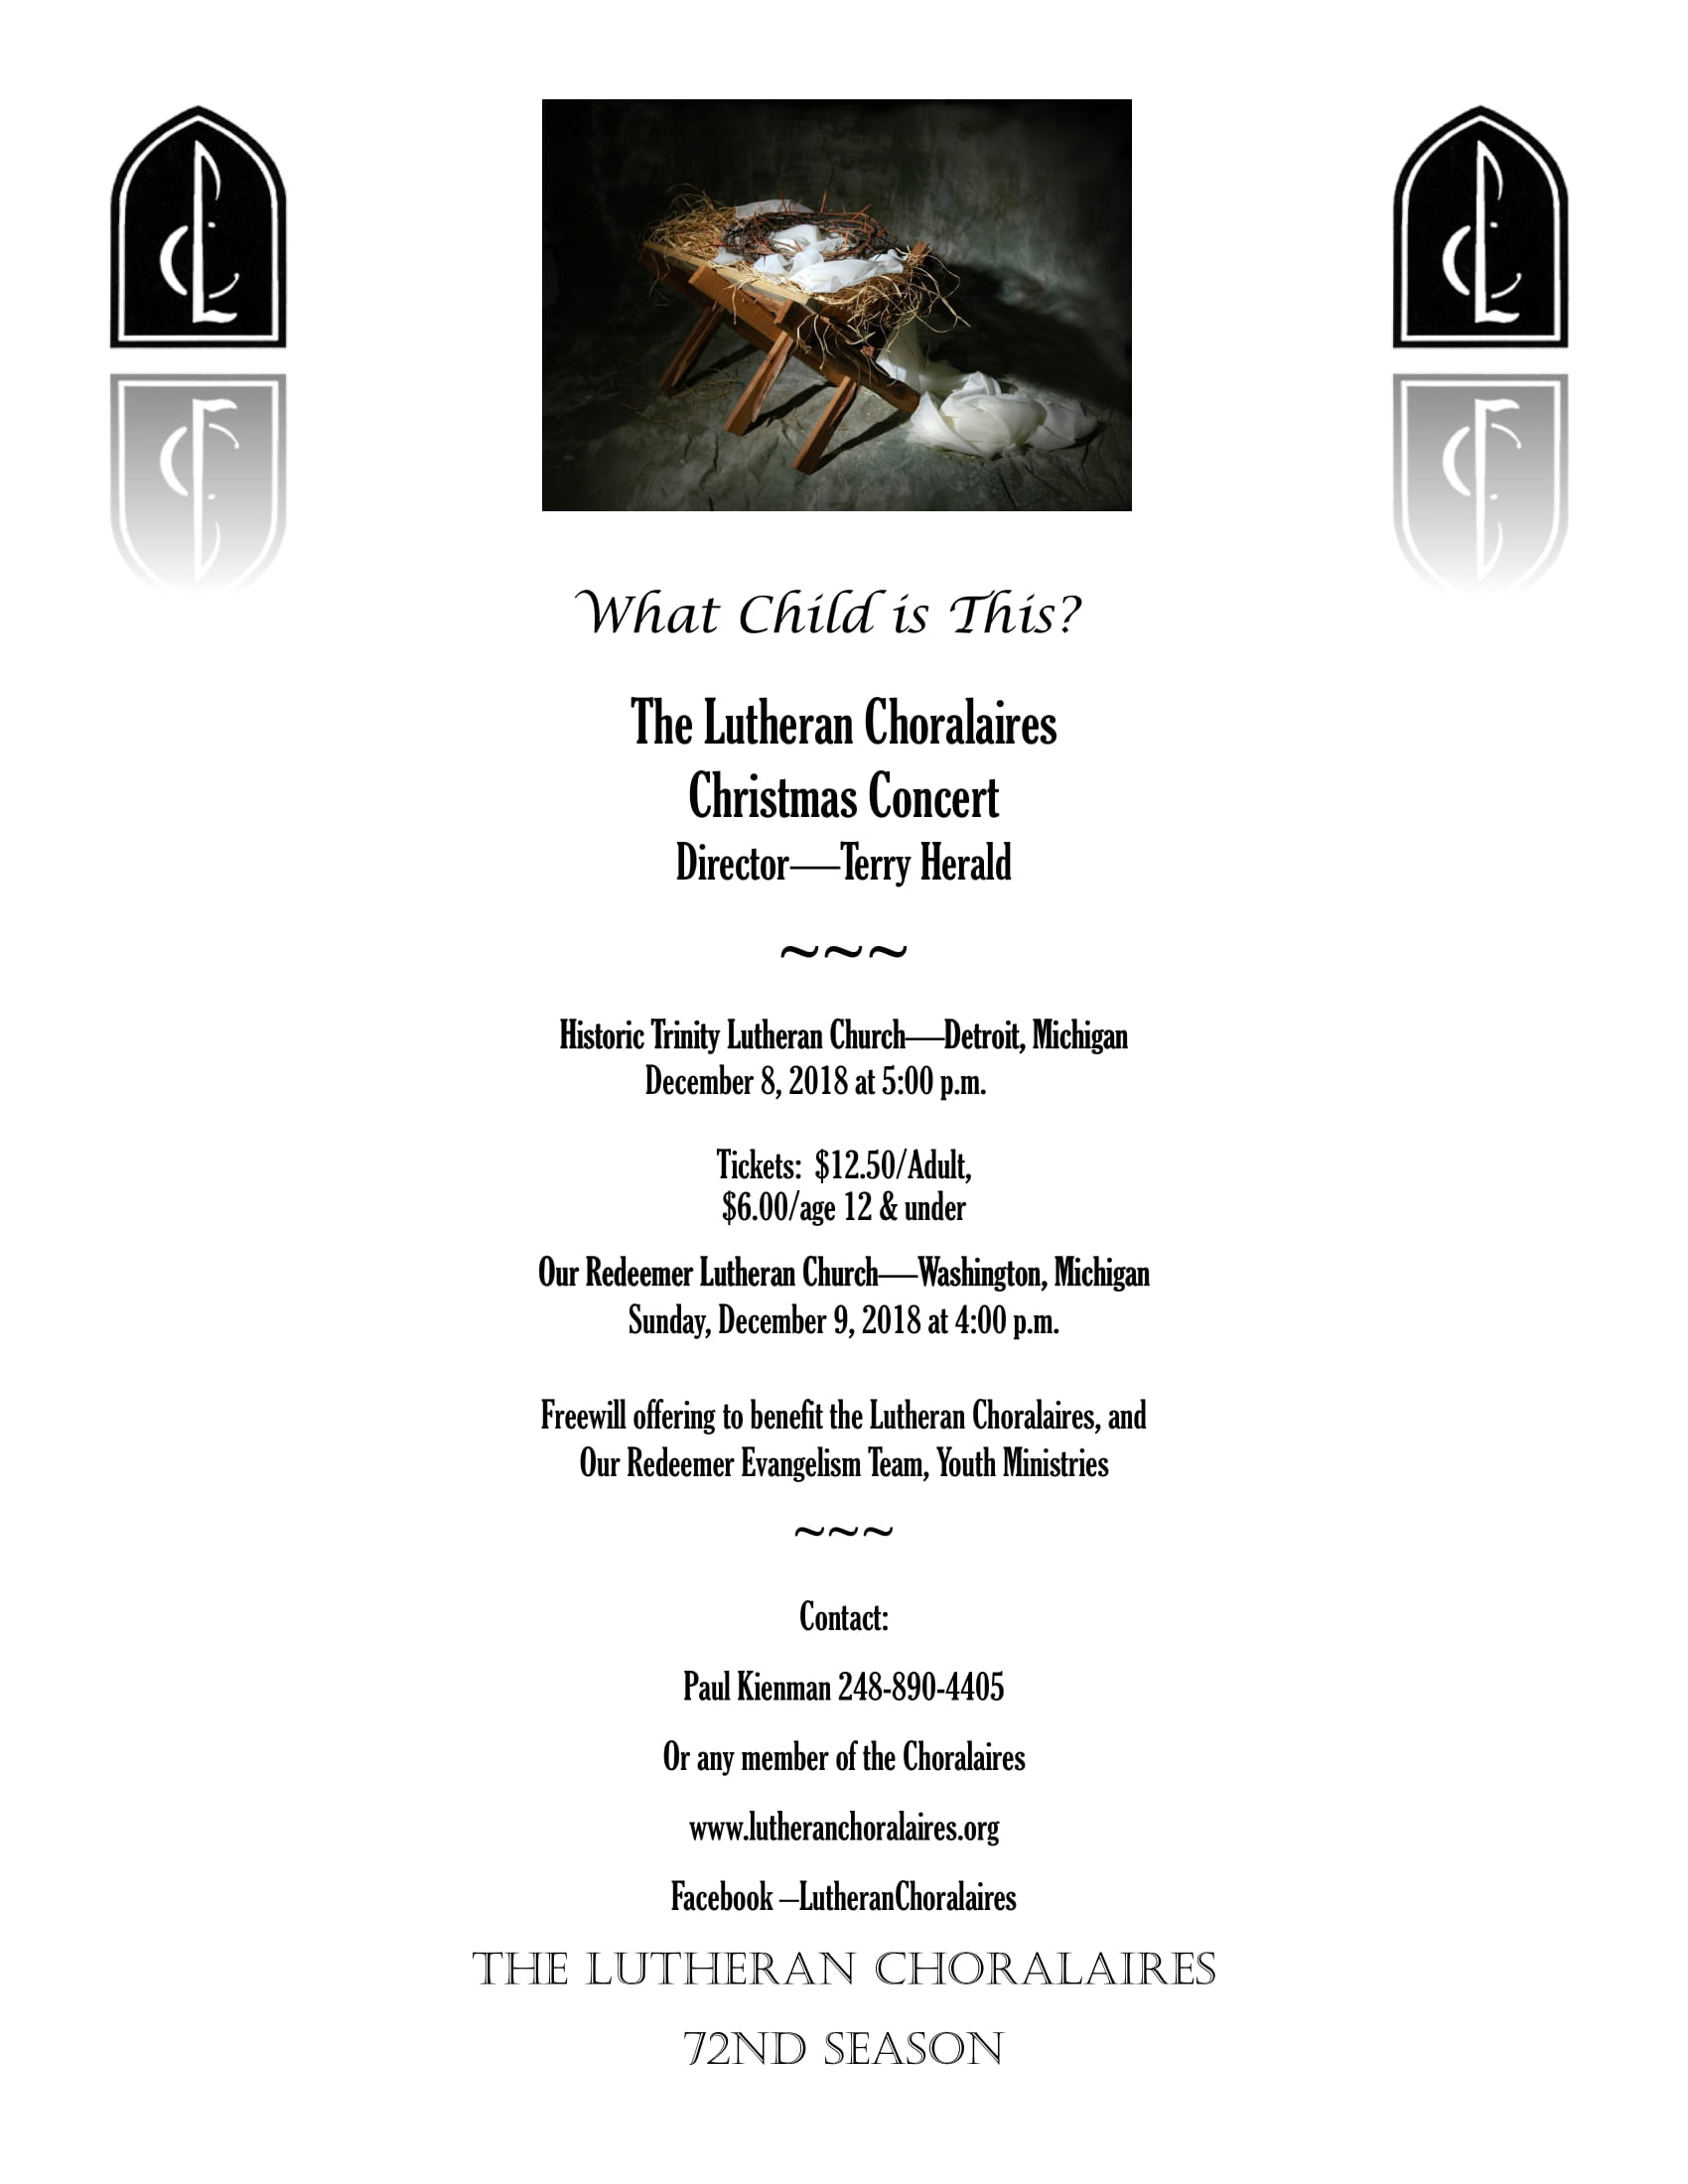 Lutheran Choralaires Christmas 2018 Flyer